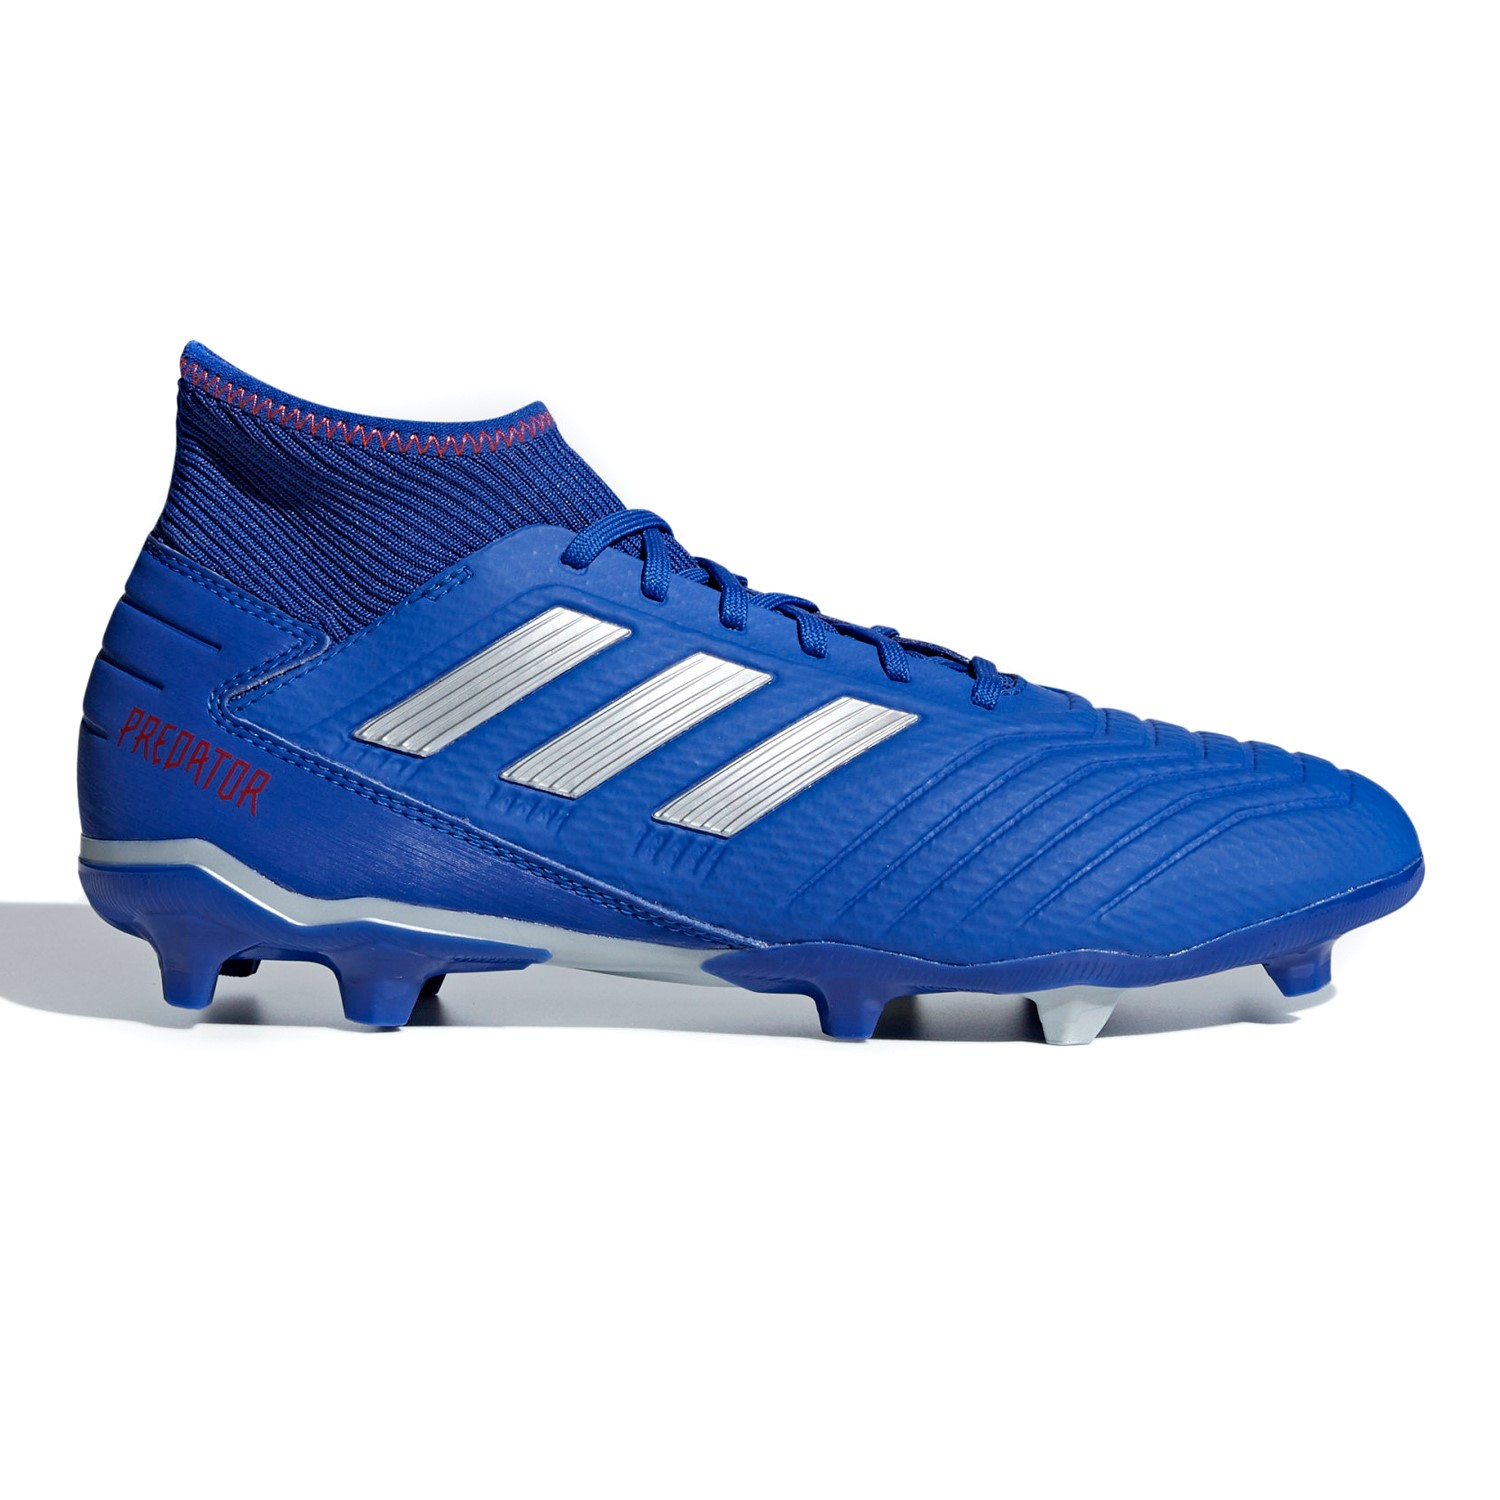 eb8802c7445 Adidas Predator 19.3 Firm Ground - Mens Football Boots - Bold Blue Silver  Active